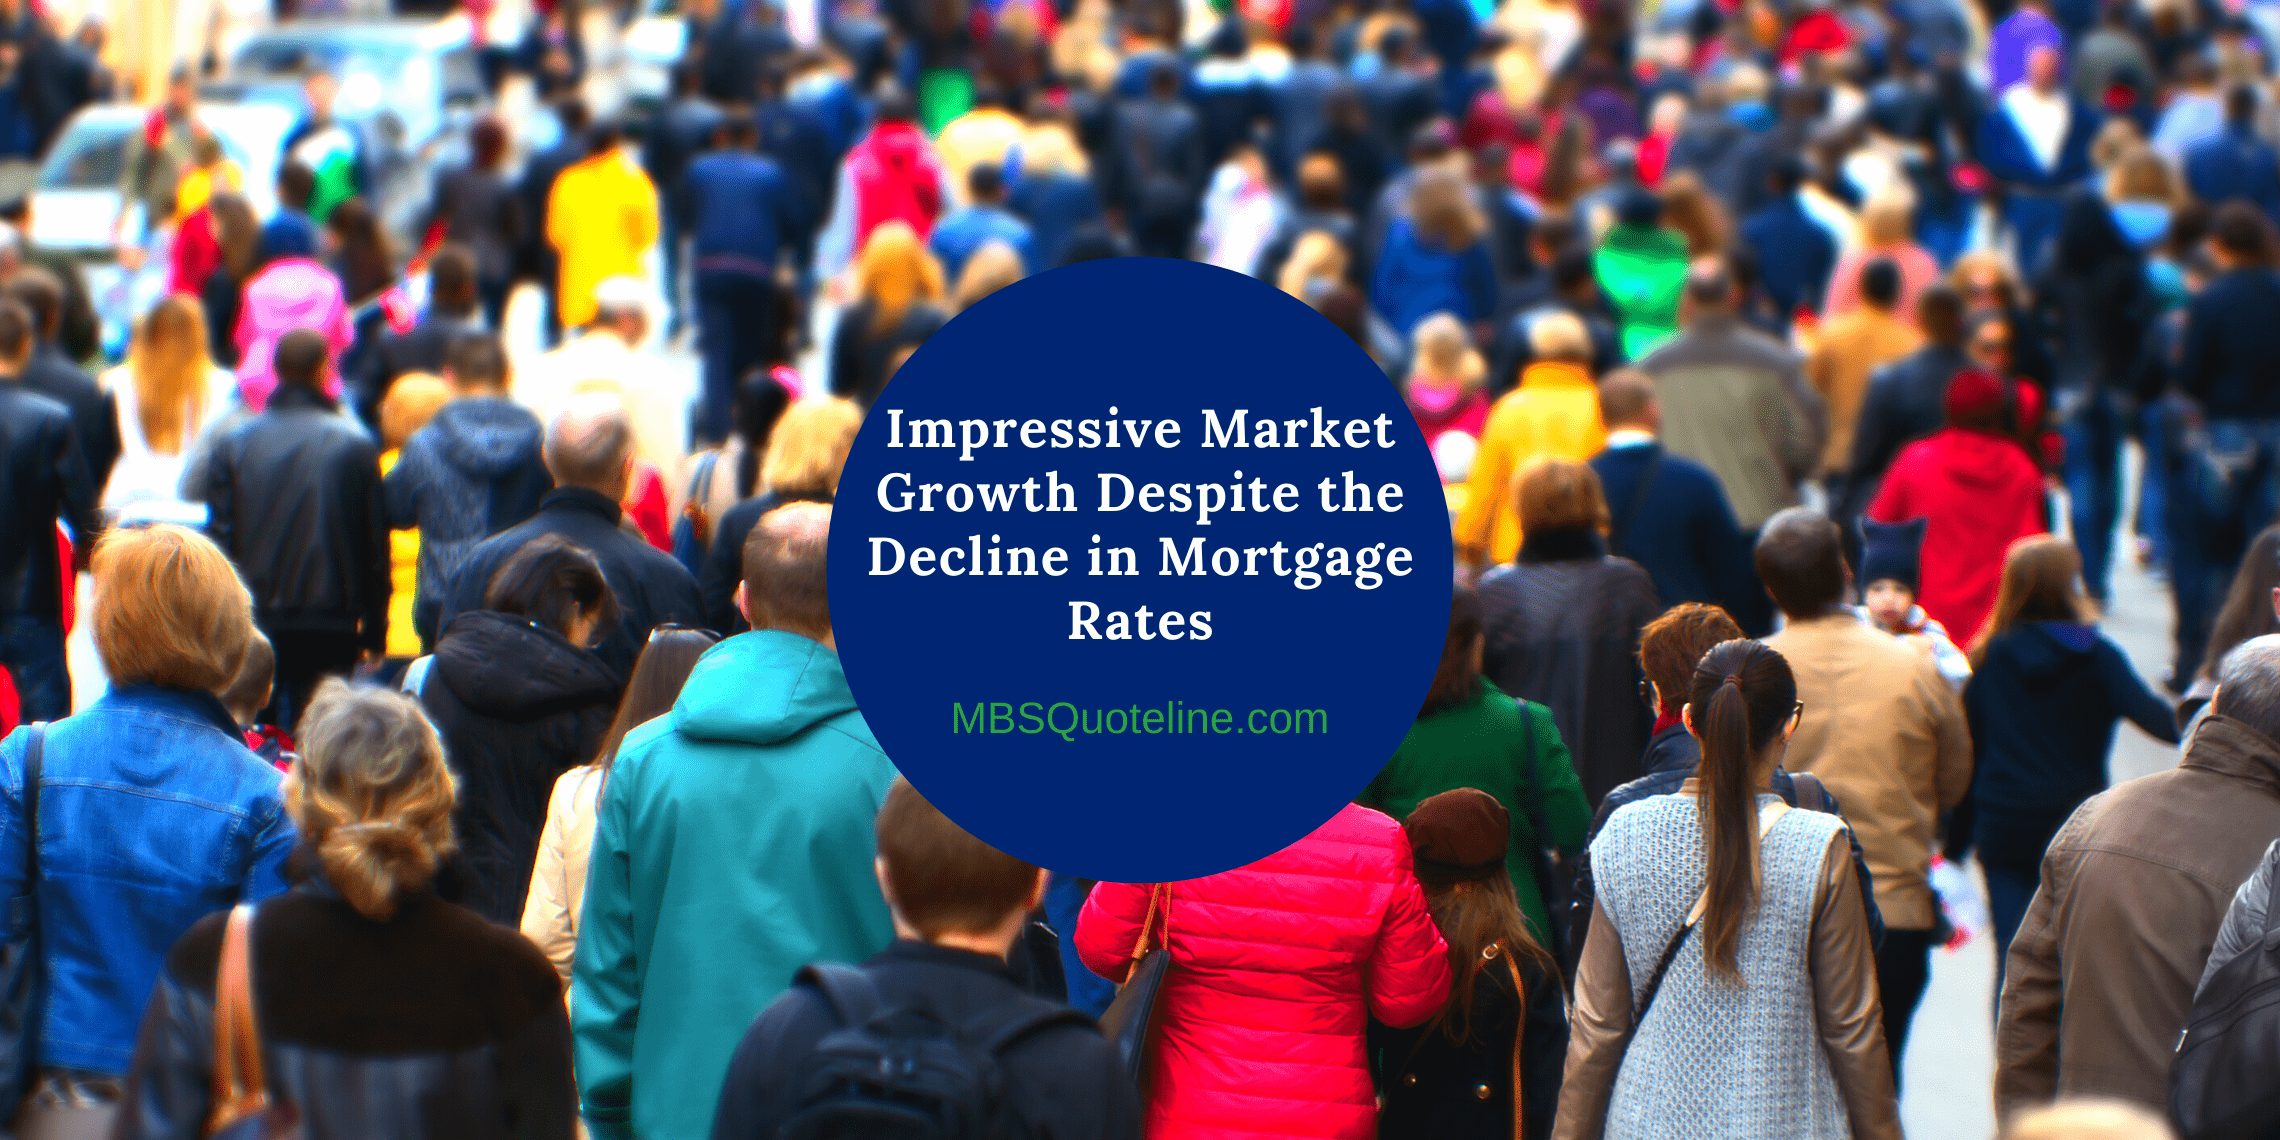 Impressive Market Growth Despite Decline Mortgage Rates MortgageTime MBSQuoteline featured